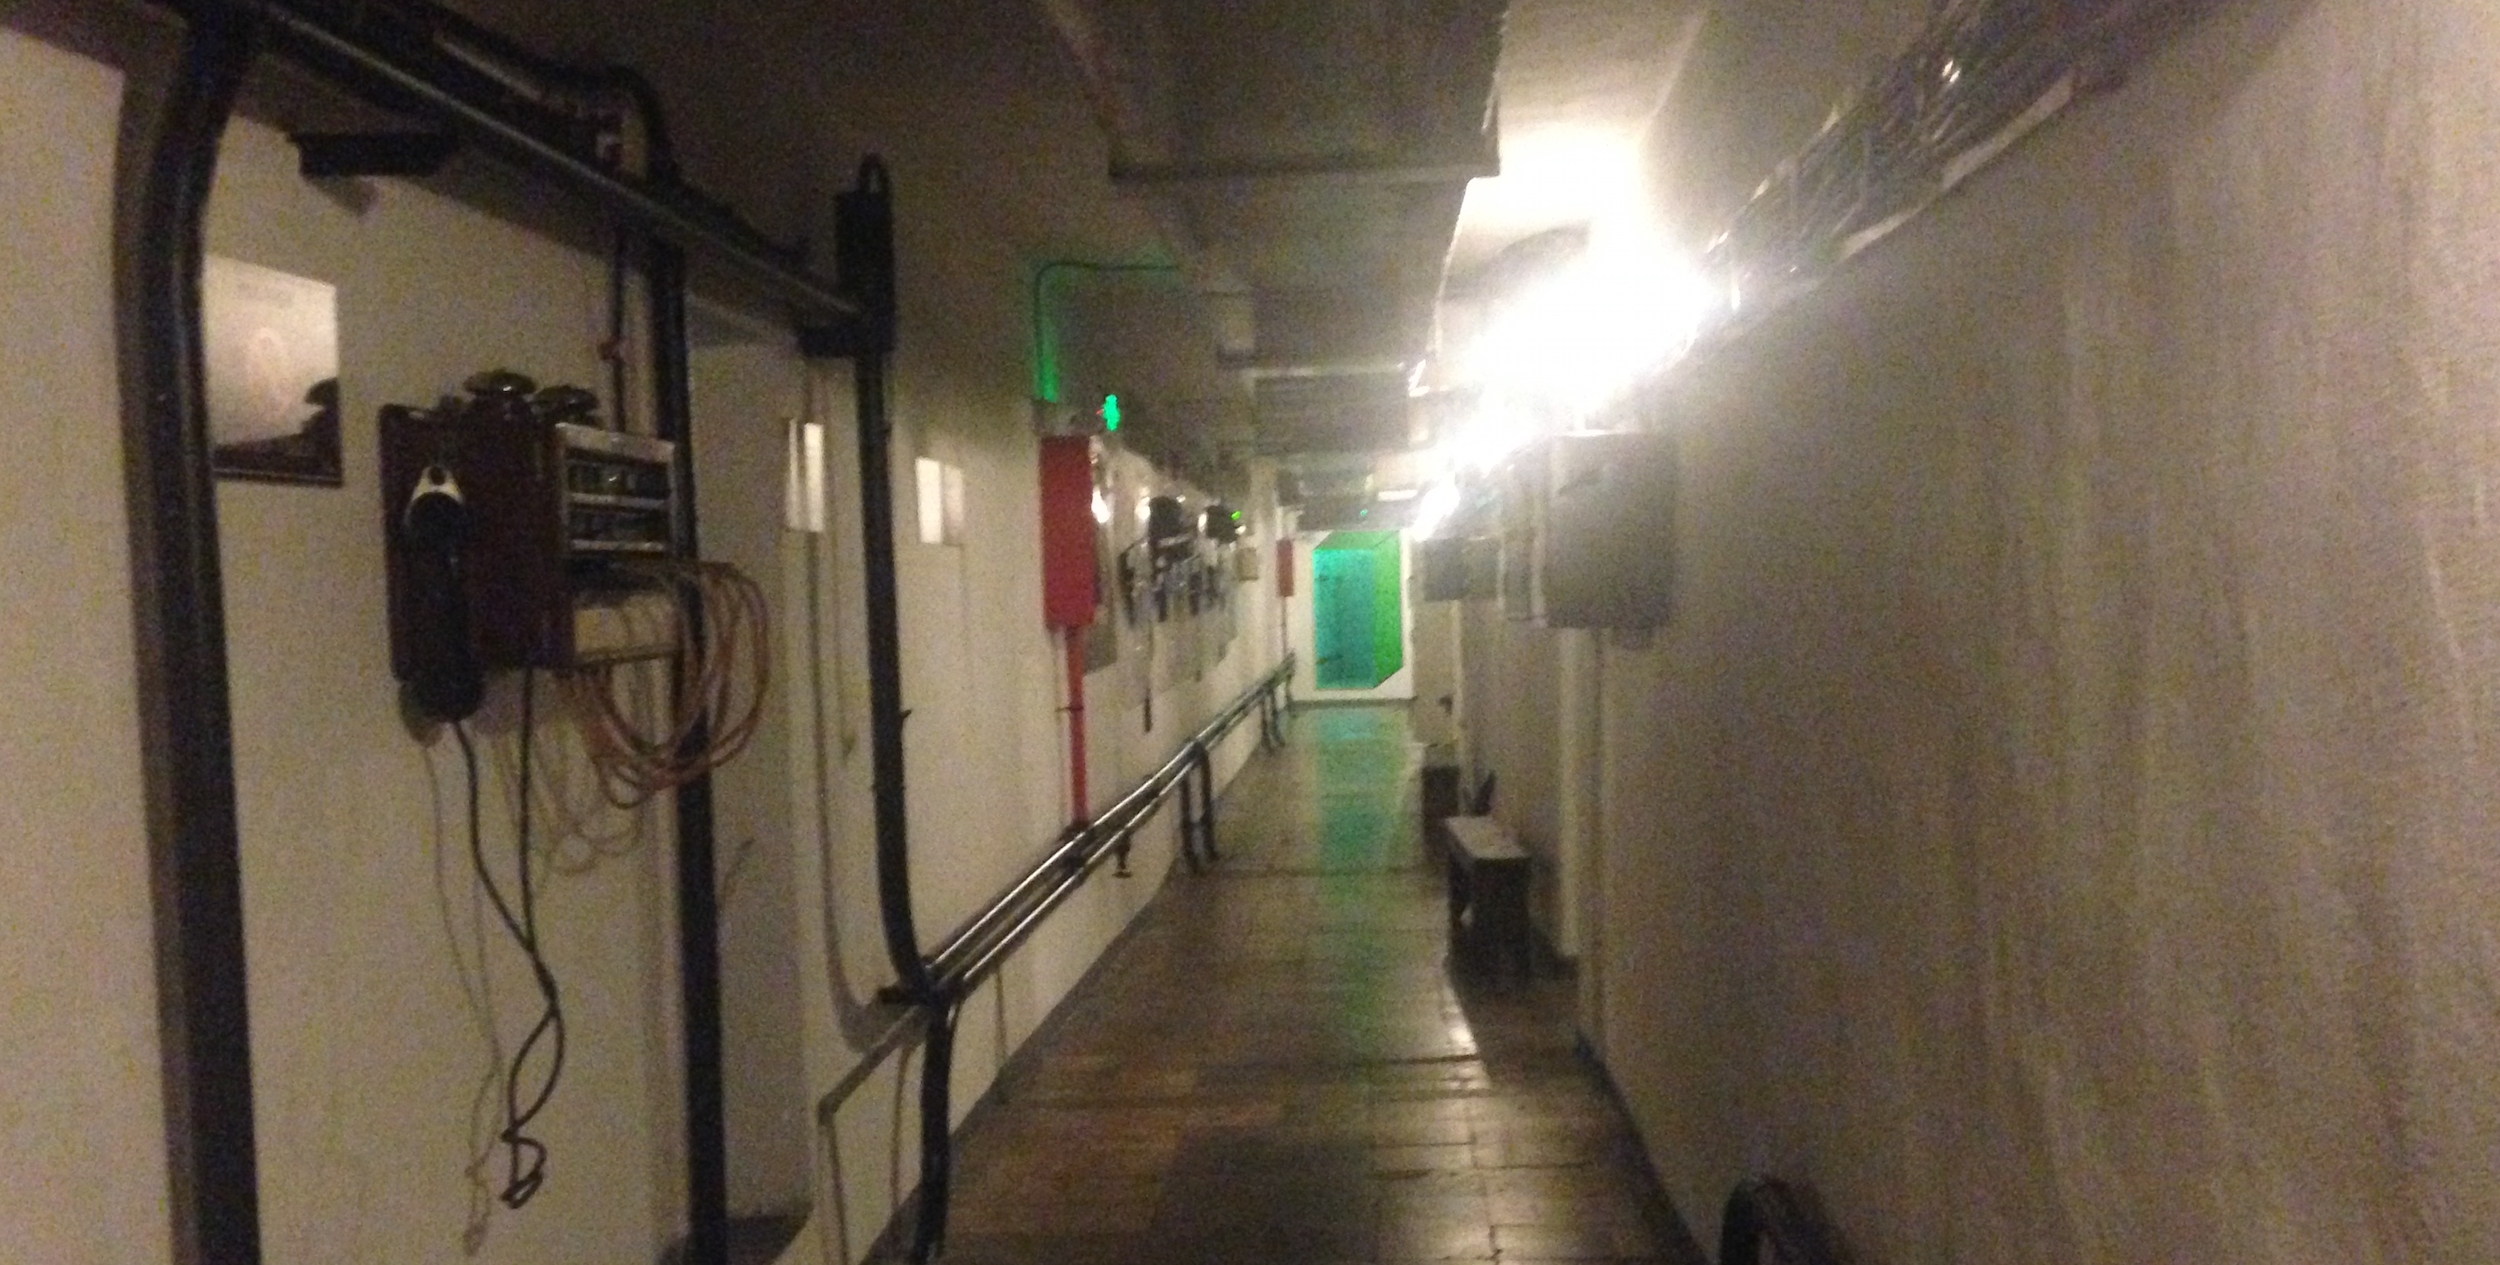 Inside BUNK'ART2 - rooms off to either side contain horrifying records of surveillance, imprisonment and interrogation . The green door at the end is the decontamination room, never used.